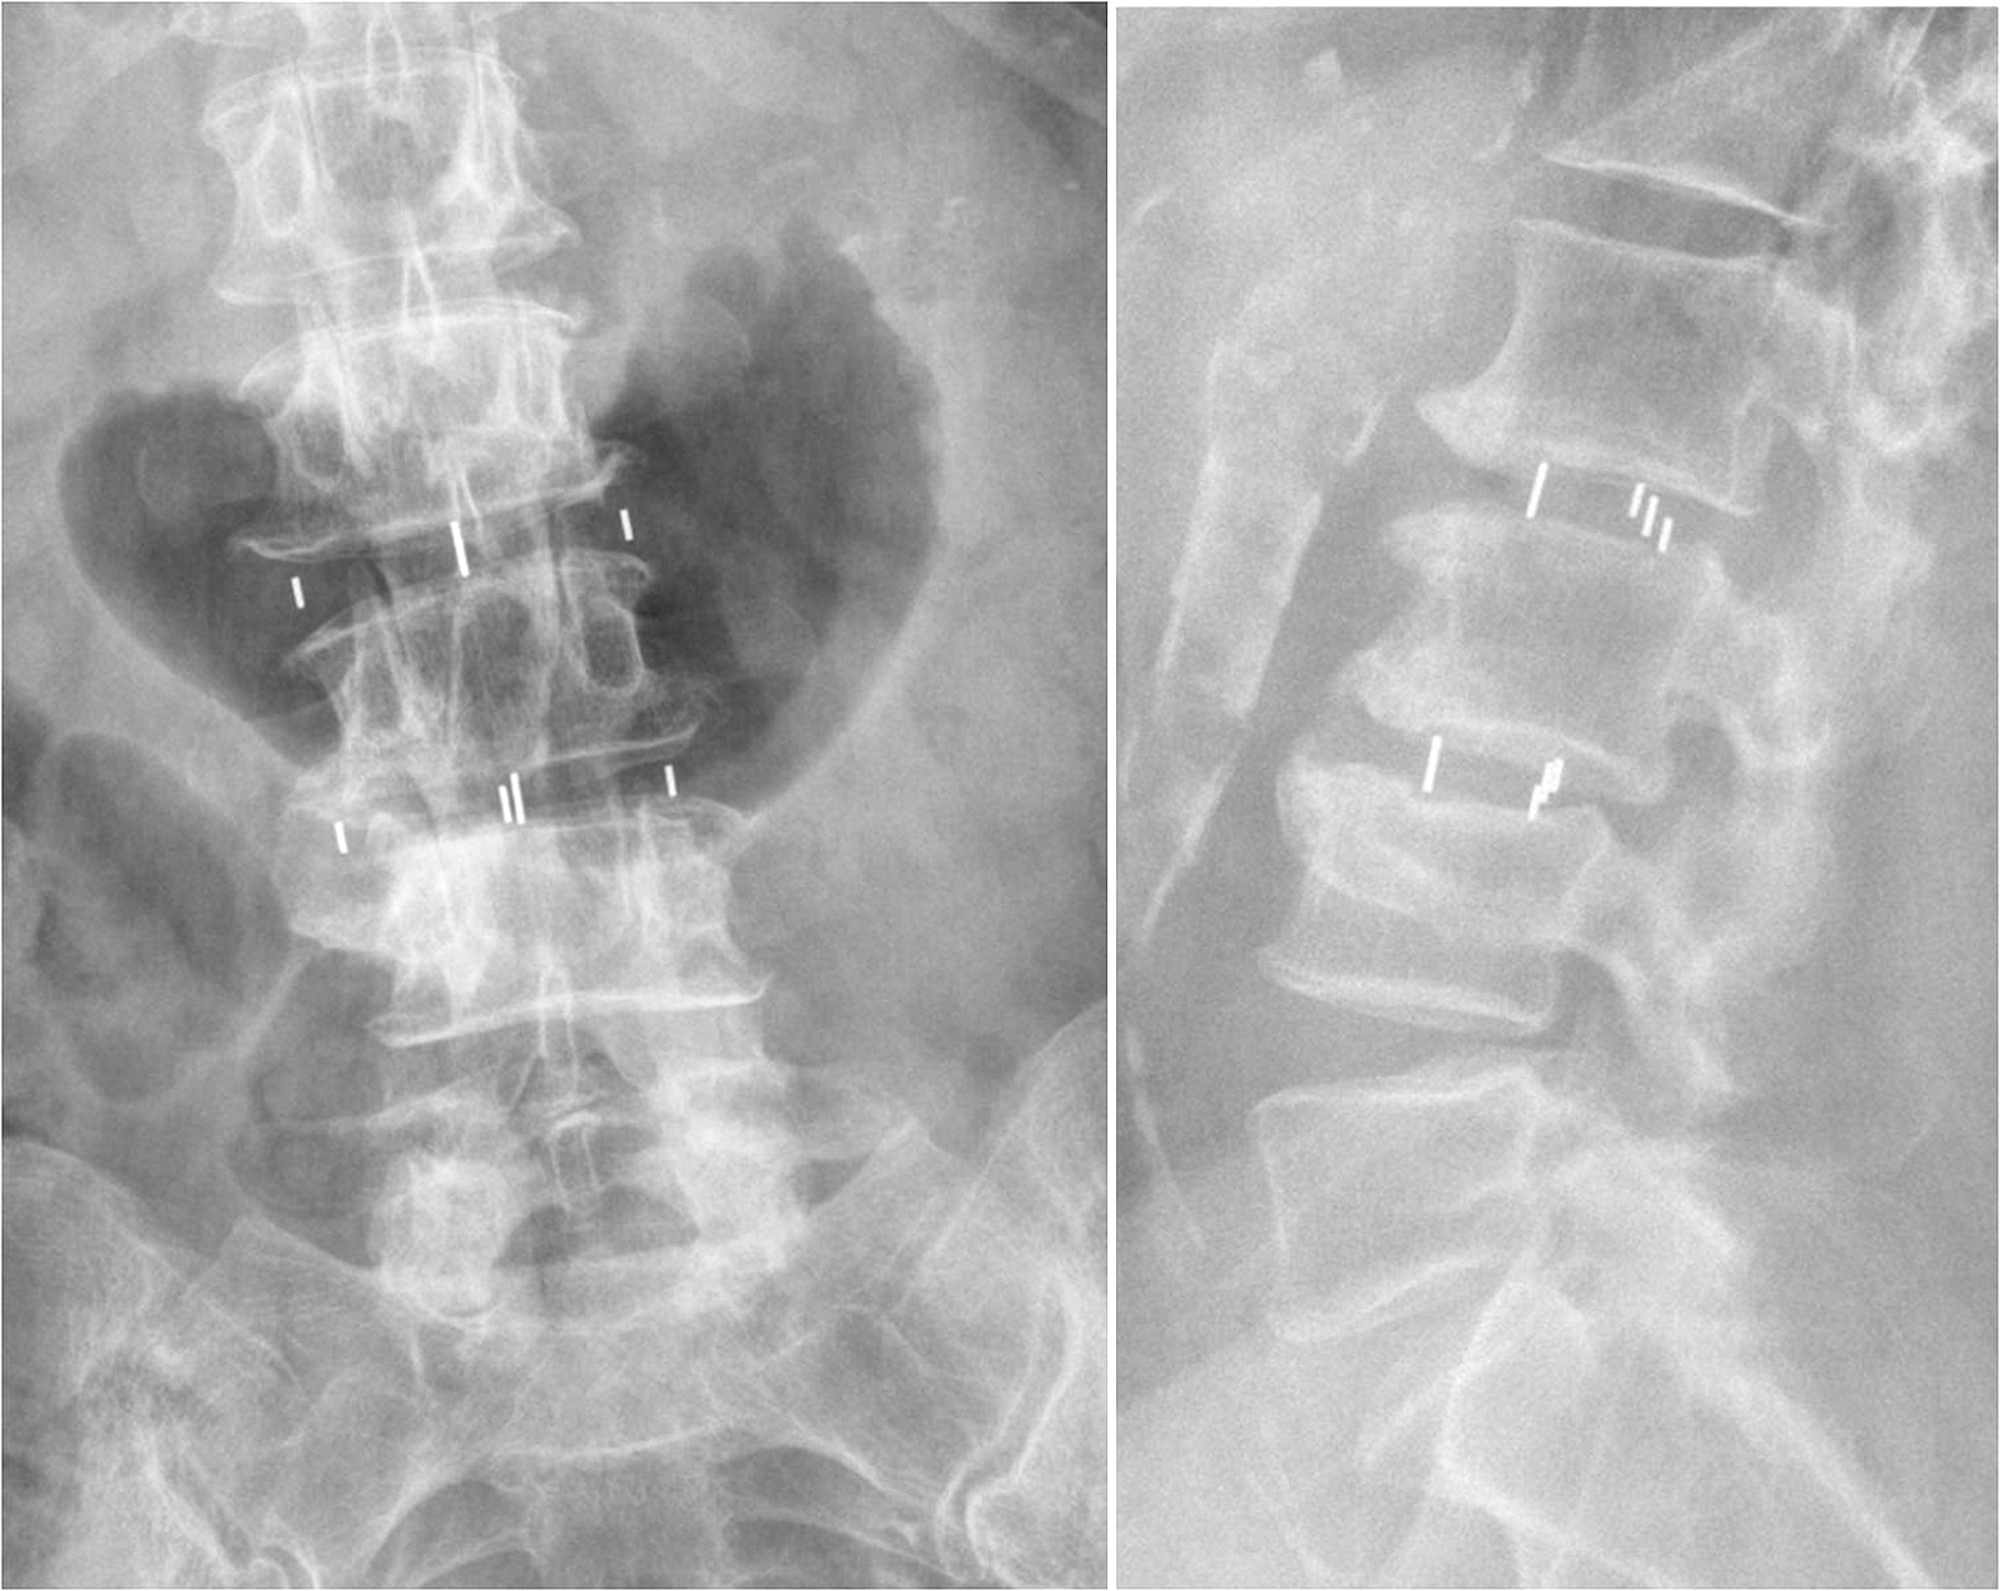 listhesis in Grade 1 spondylolisthesis, or a slipped disc, is a spinal condition that can be very painful when one vertebra slips forward over the other, the result is uncomfortable friction exacerbated by motion.